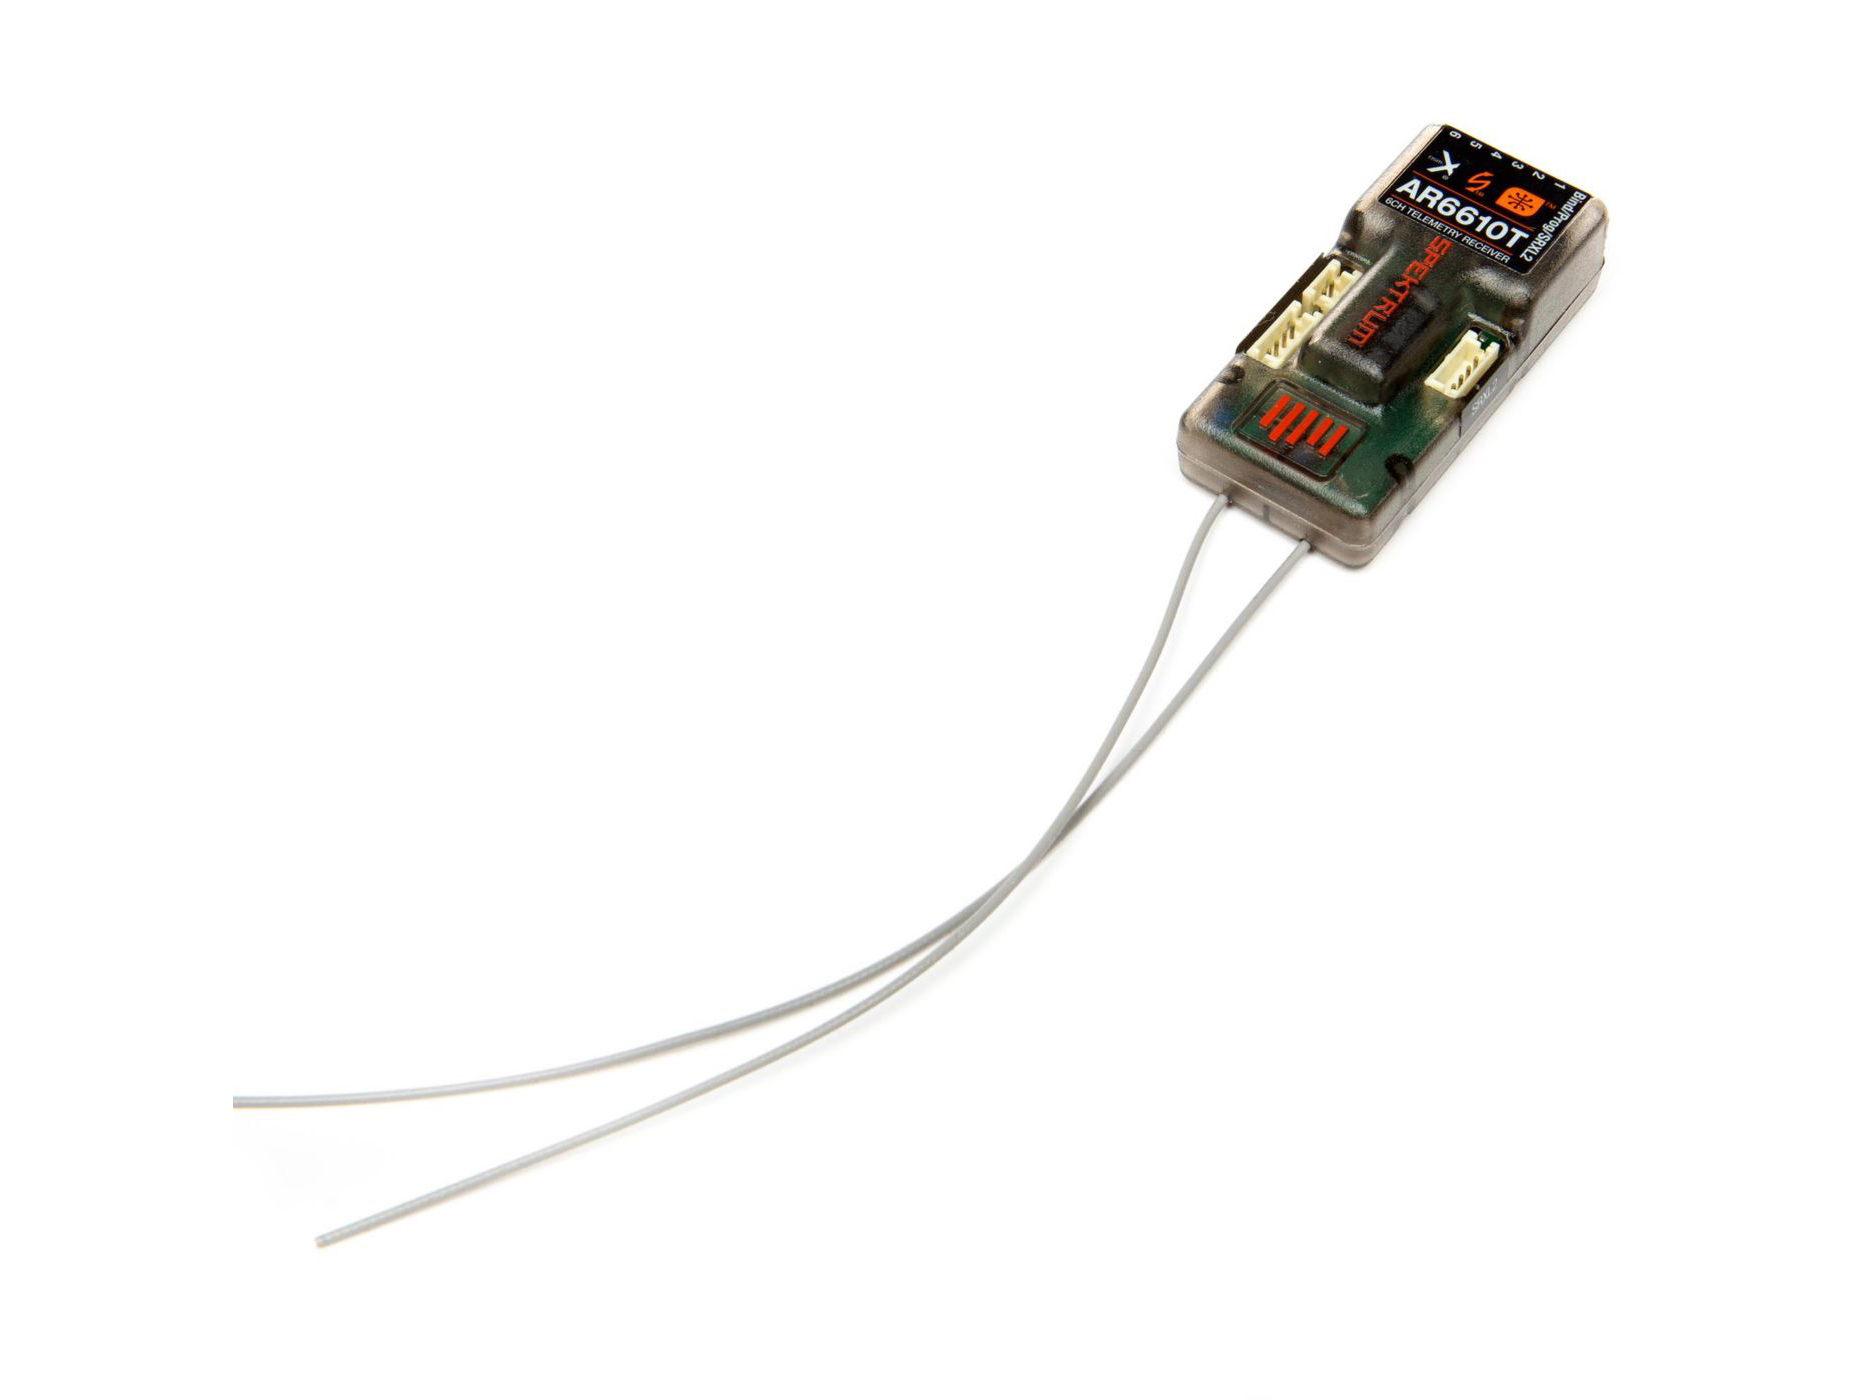 Spektrum AR6610T 6 Channel DSMX Telemetry Receiver